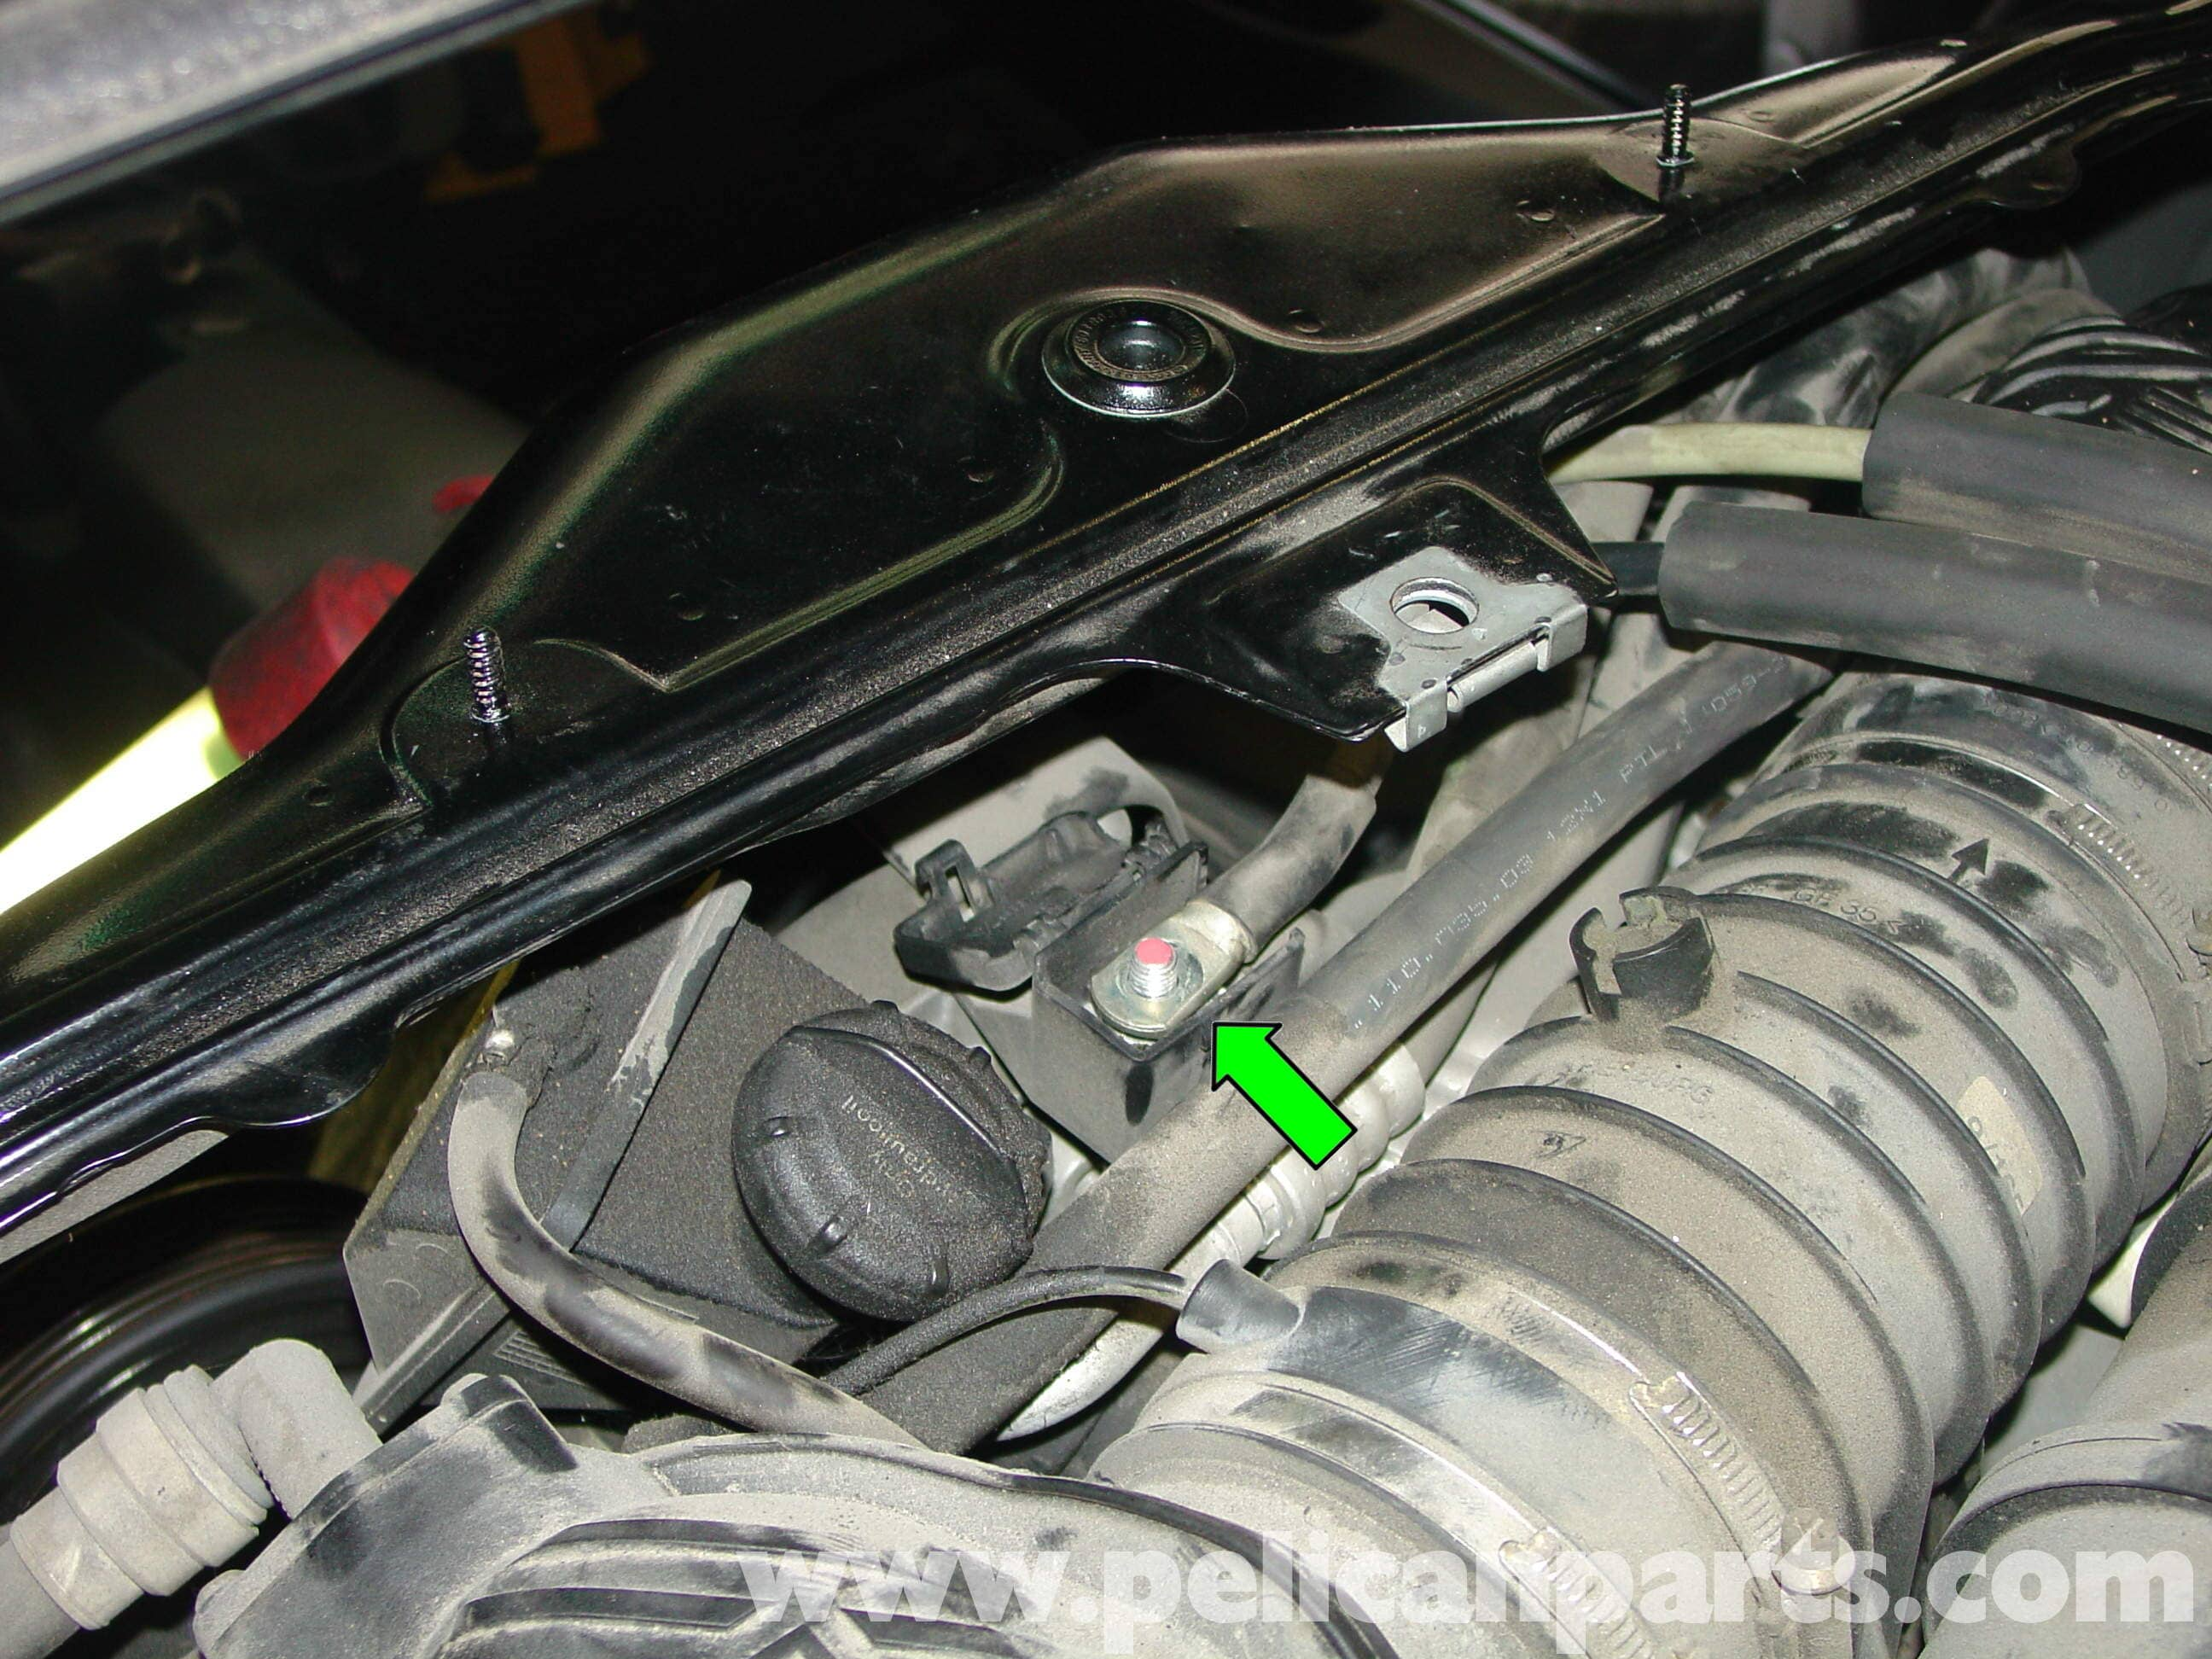 Porsche Boxster Alternator Replacement 986 987 1997 08 How To Disconnect Wiring Harness Large Image Extra